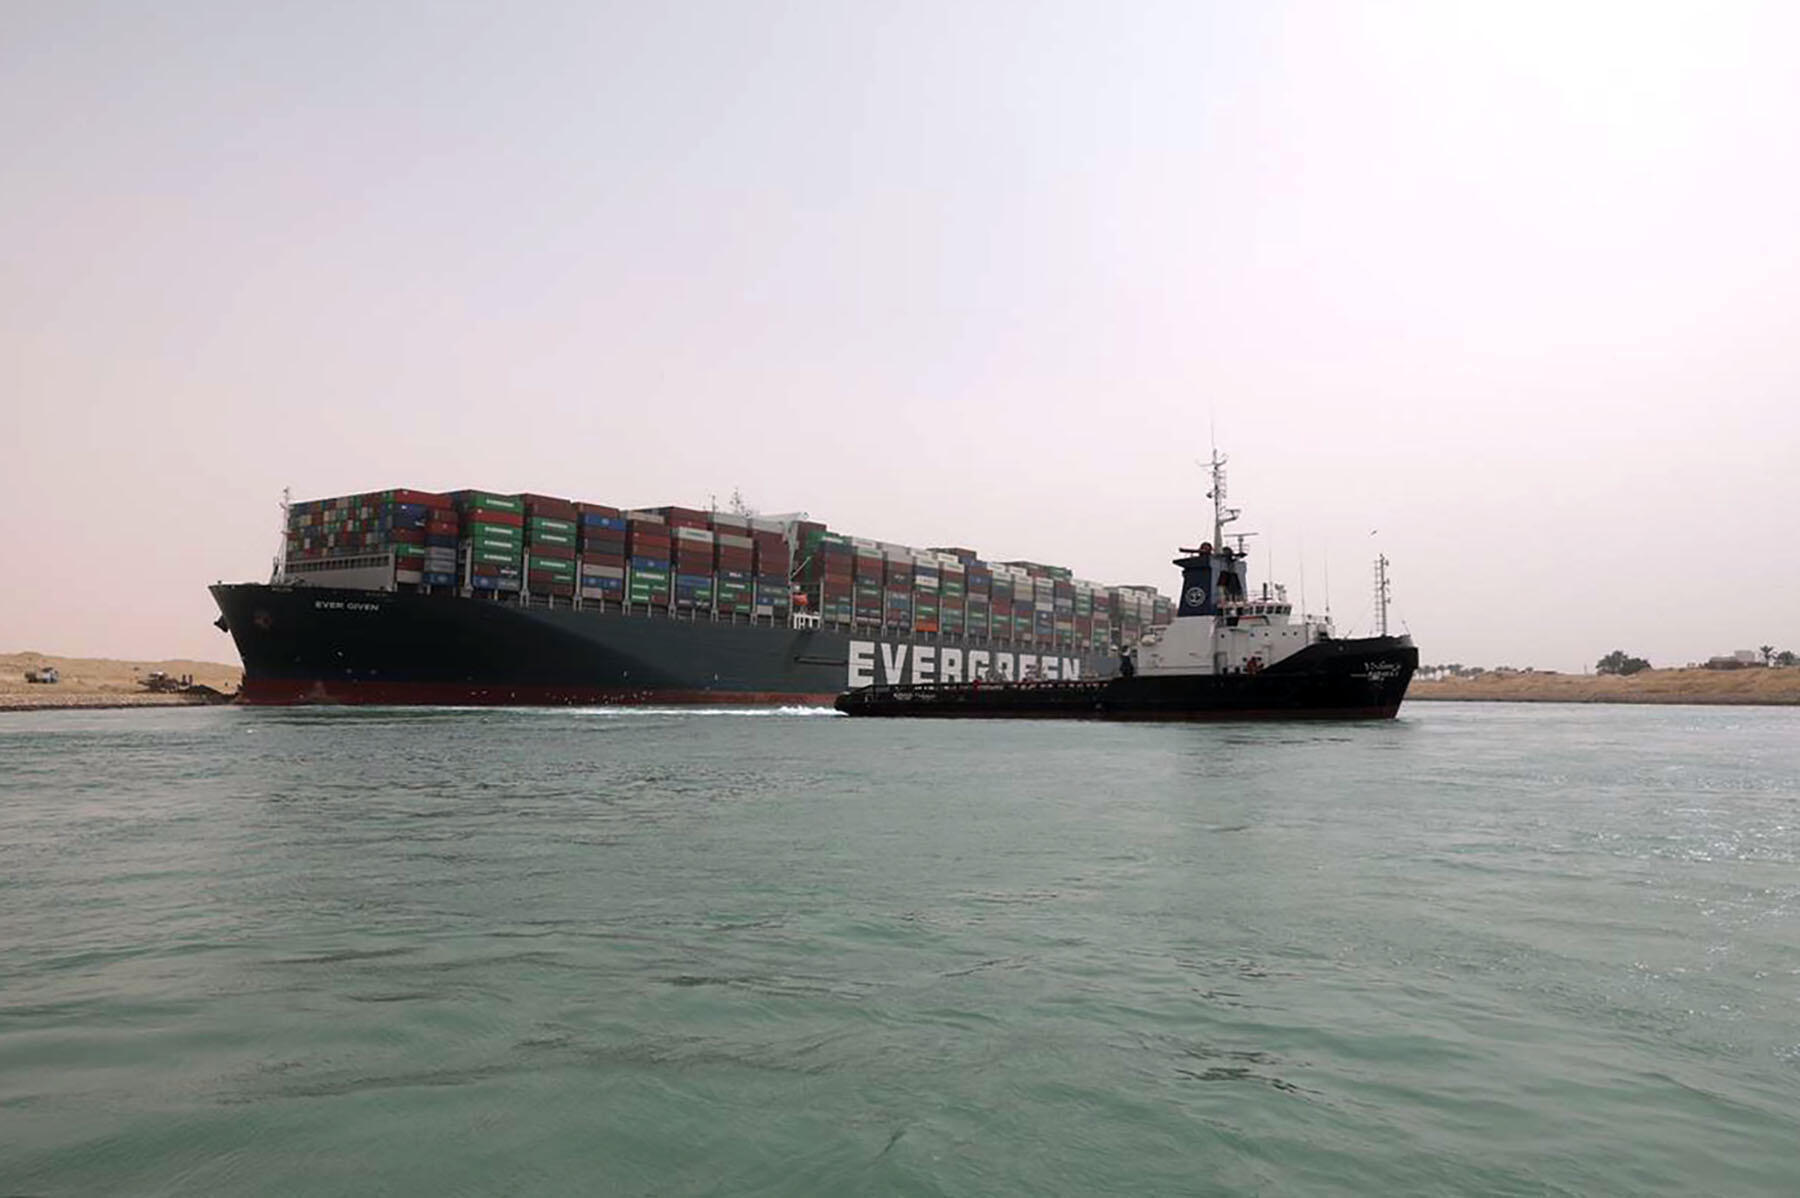 The Japanese-owned MV Ever Given got stuck during a sandstorm last Tuesday.